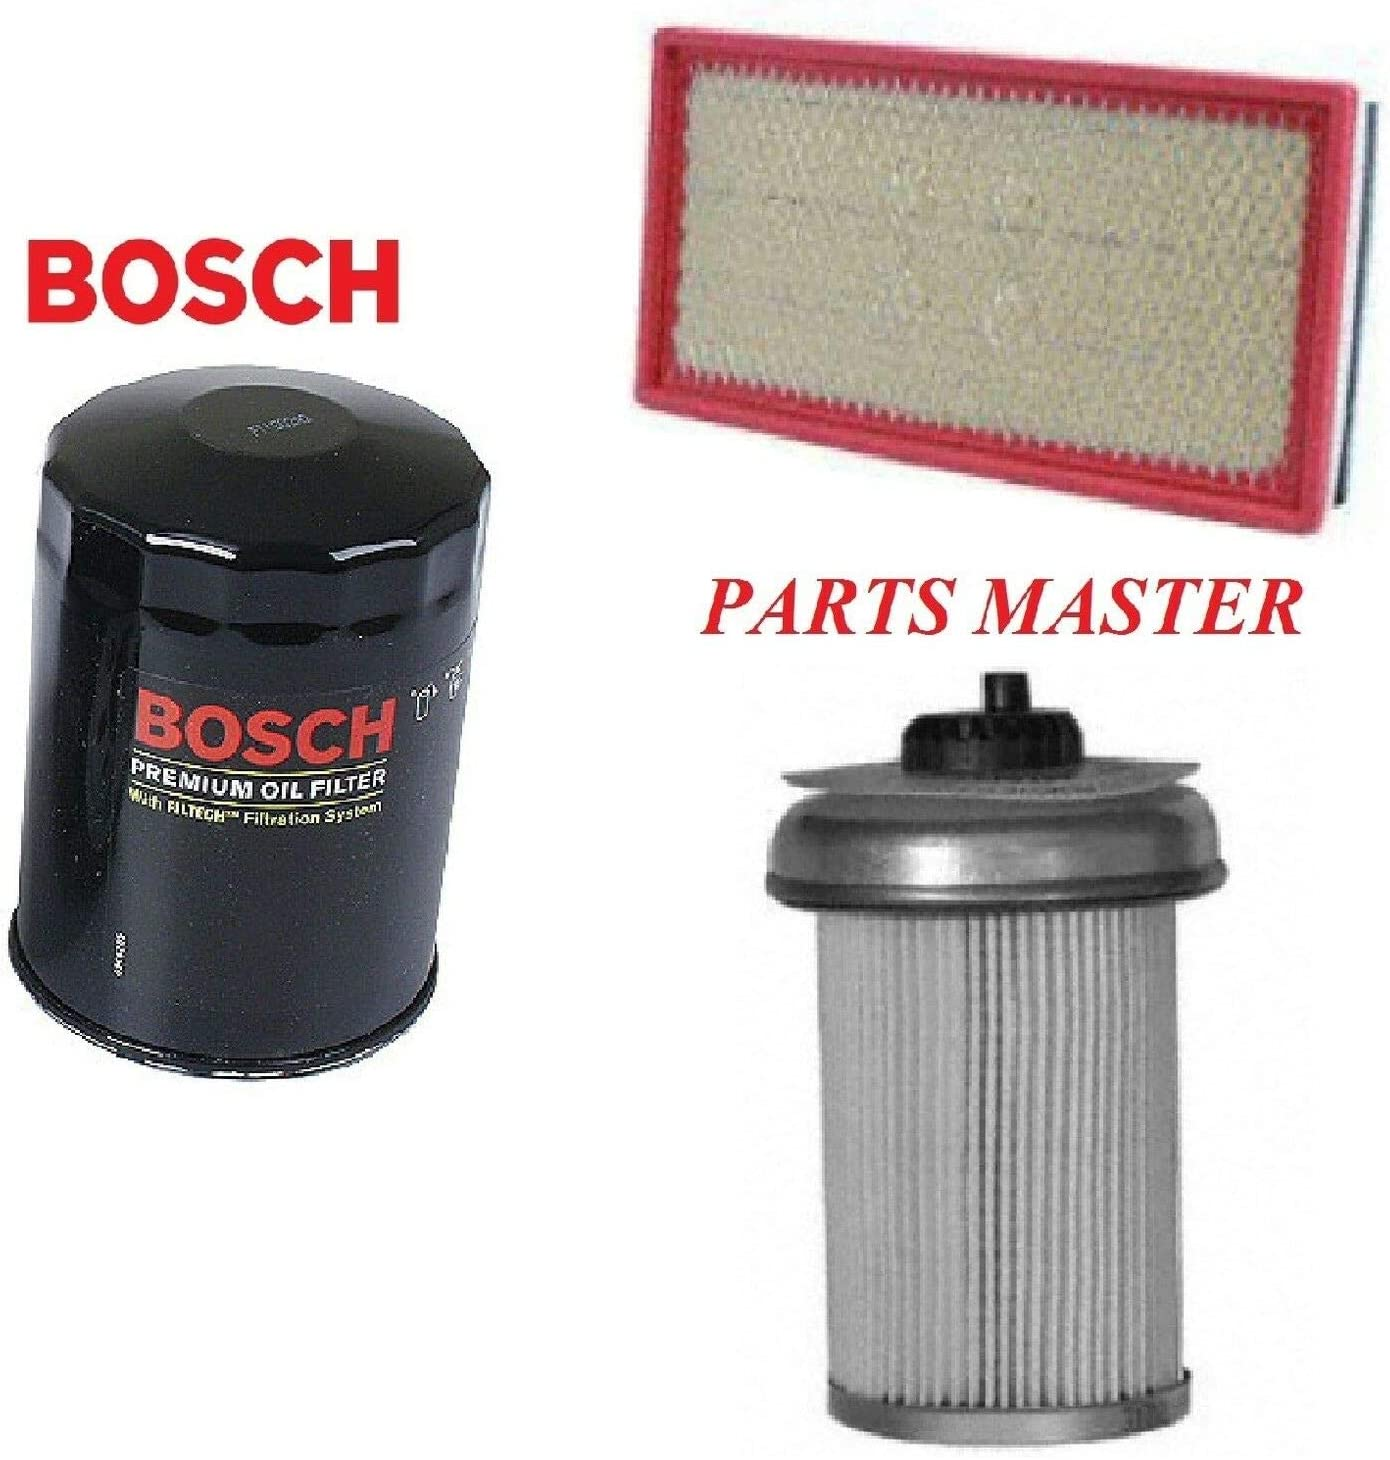 8USAUTO Tune Up Kit Air Oil Fuel Filters FIT Chevrolet P30 V8 6.5L; Diesel; Turbo 1994-1999